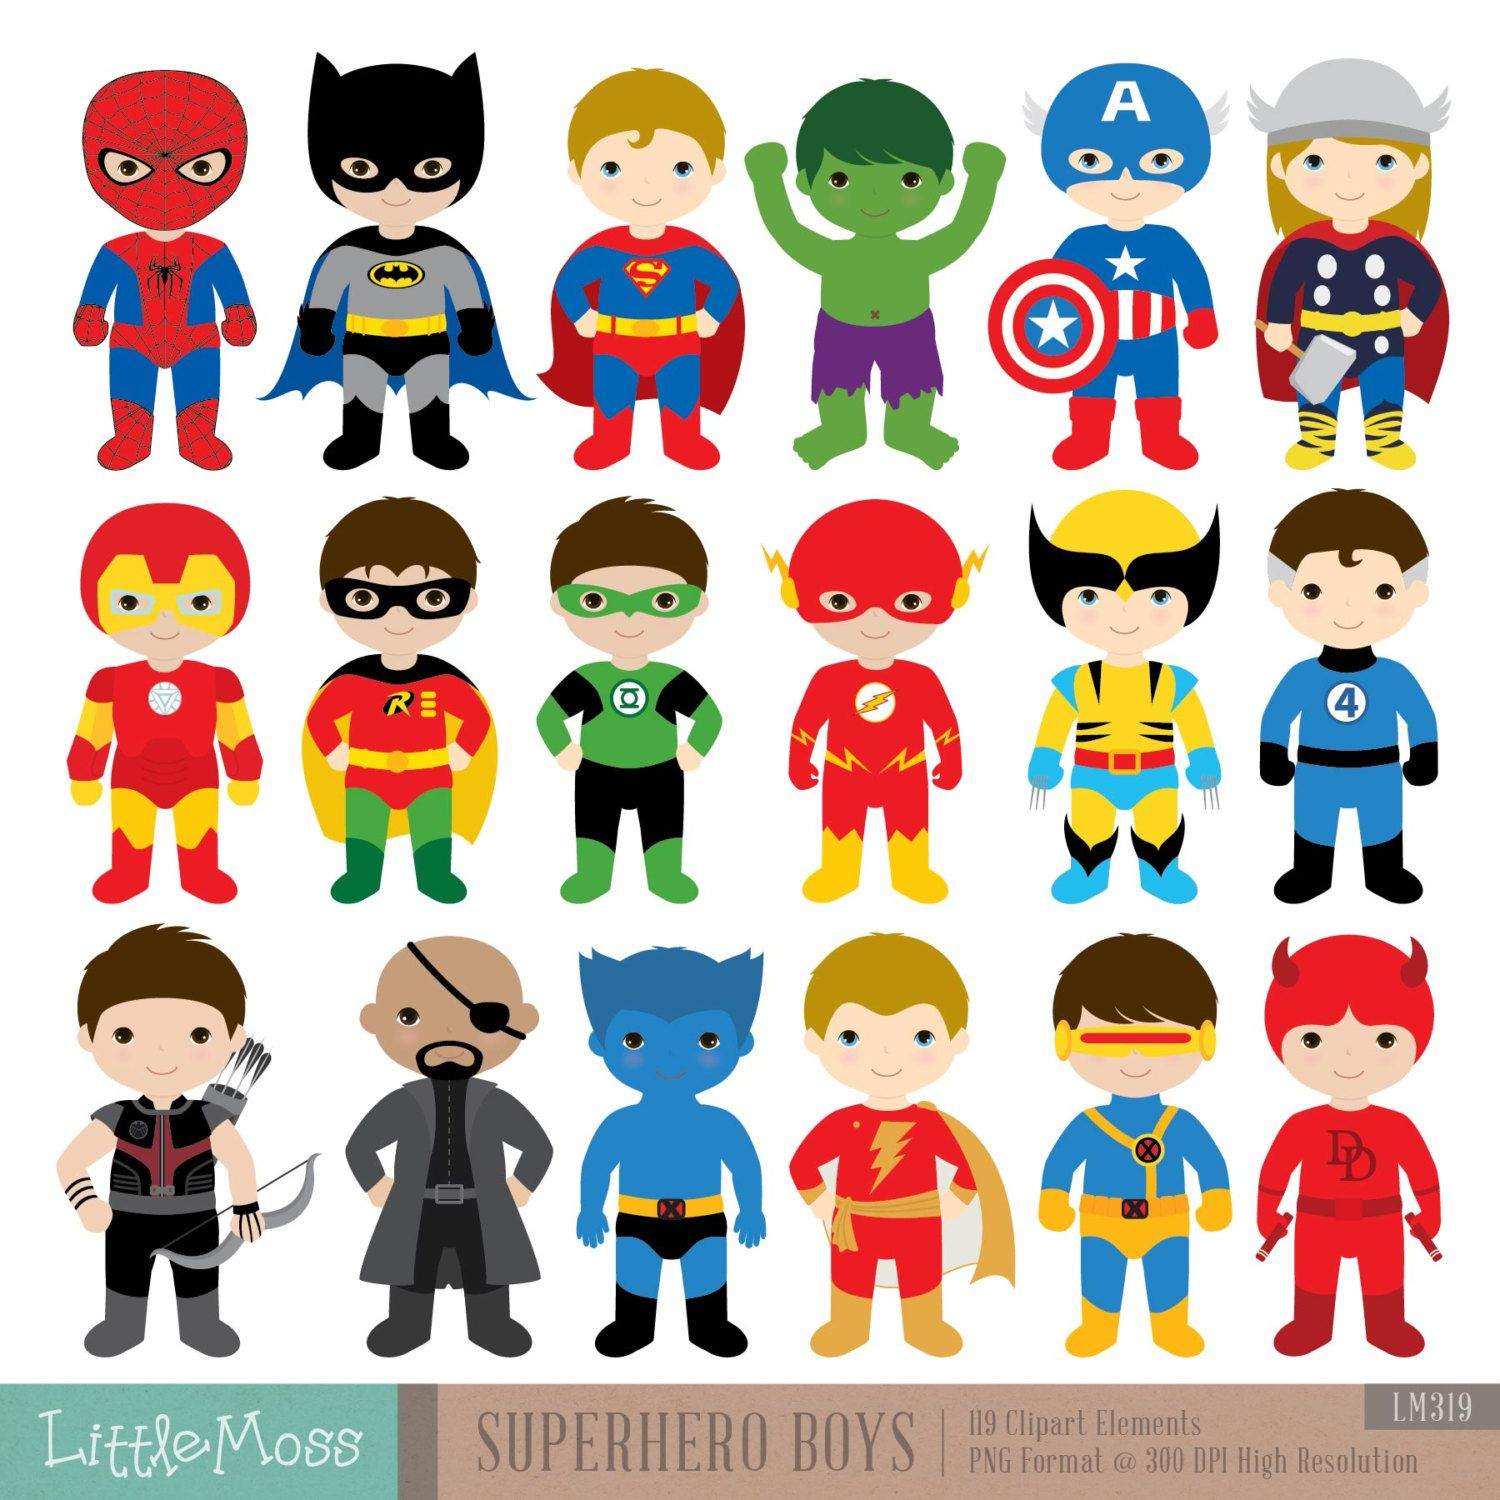 Cartooning The Ultimate Character Design Book Pdf Free : Boys superhero costumes clipart superheroes by